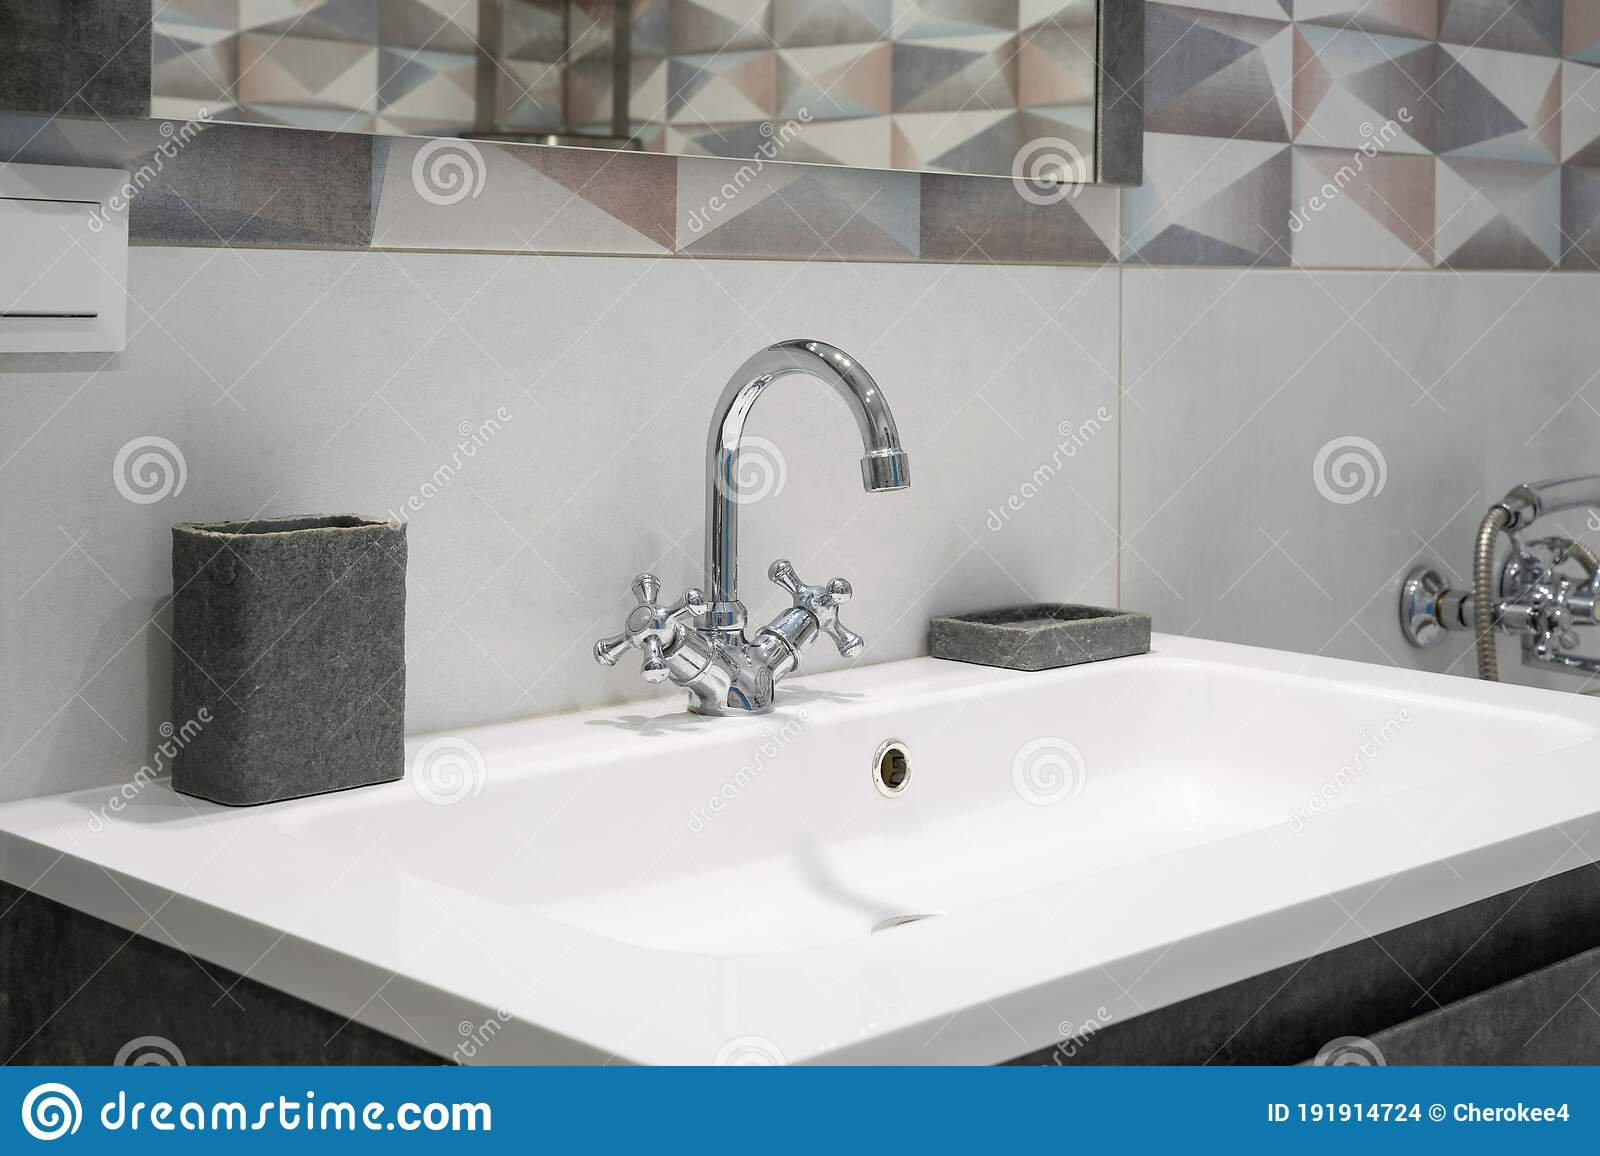 Modern Bathroom Interior With Metal Faucet And Ceramic White Sink Bath Accessories And Mirror Stock Photo Image Of Plumbing Bath 191914724